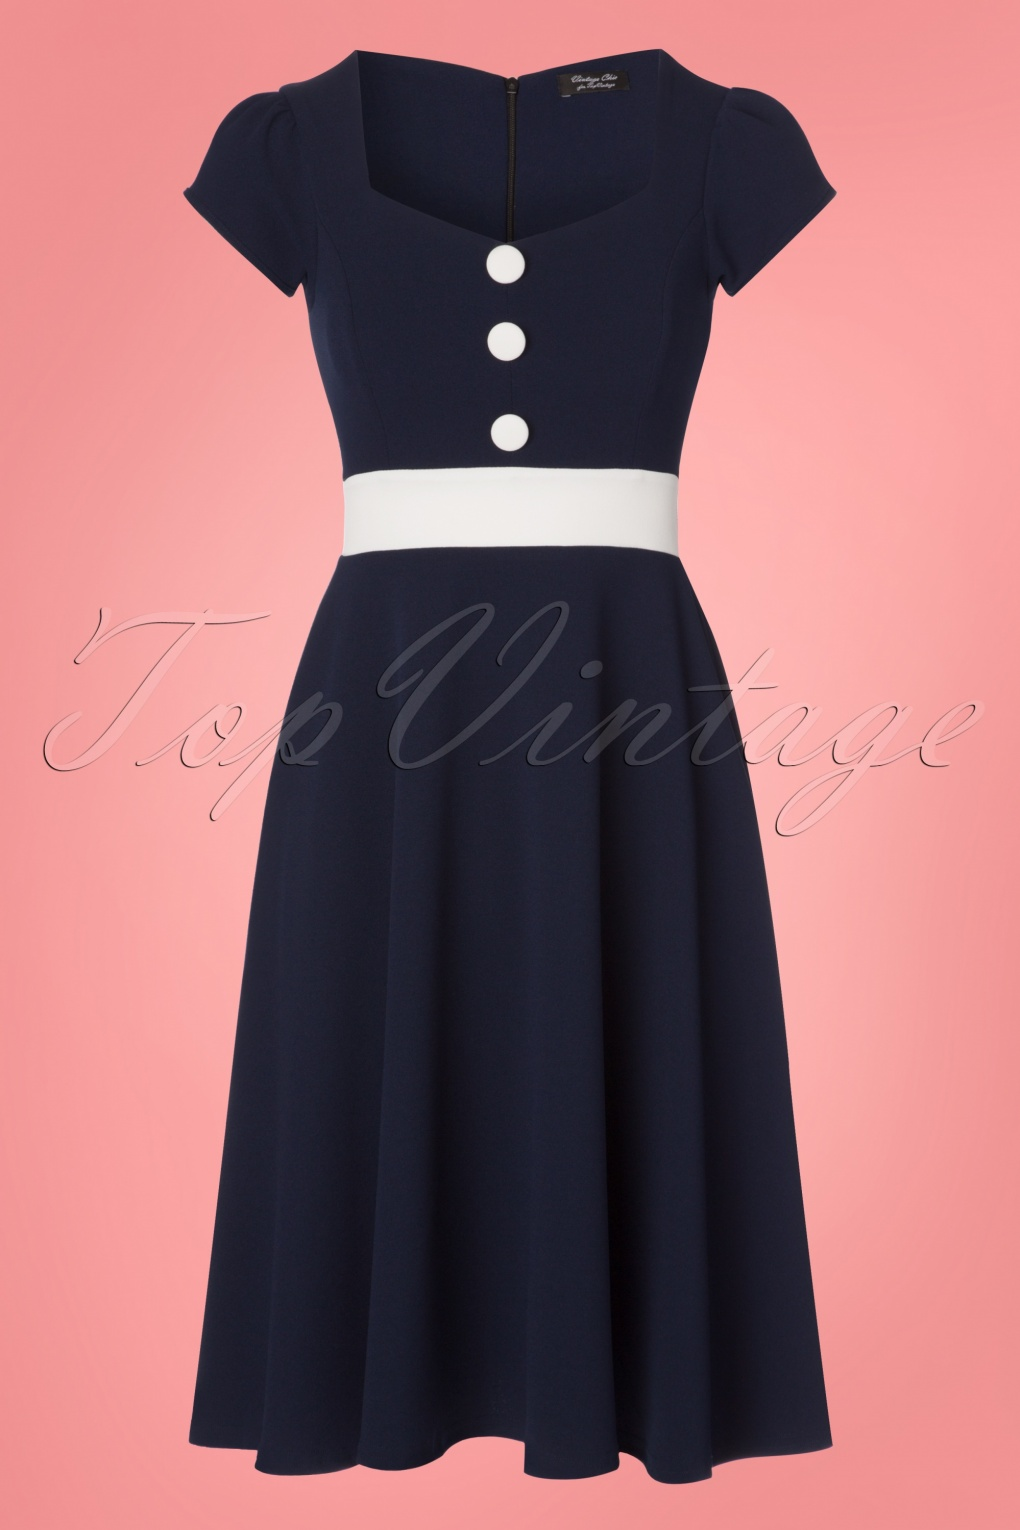 Sailor Dresses, Nautical Dress, Pin Up & WW2 Dresses 50s Rebecca Swing Dress in Navy £47.51 AT vintagedancer.com